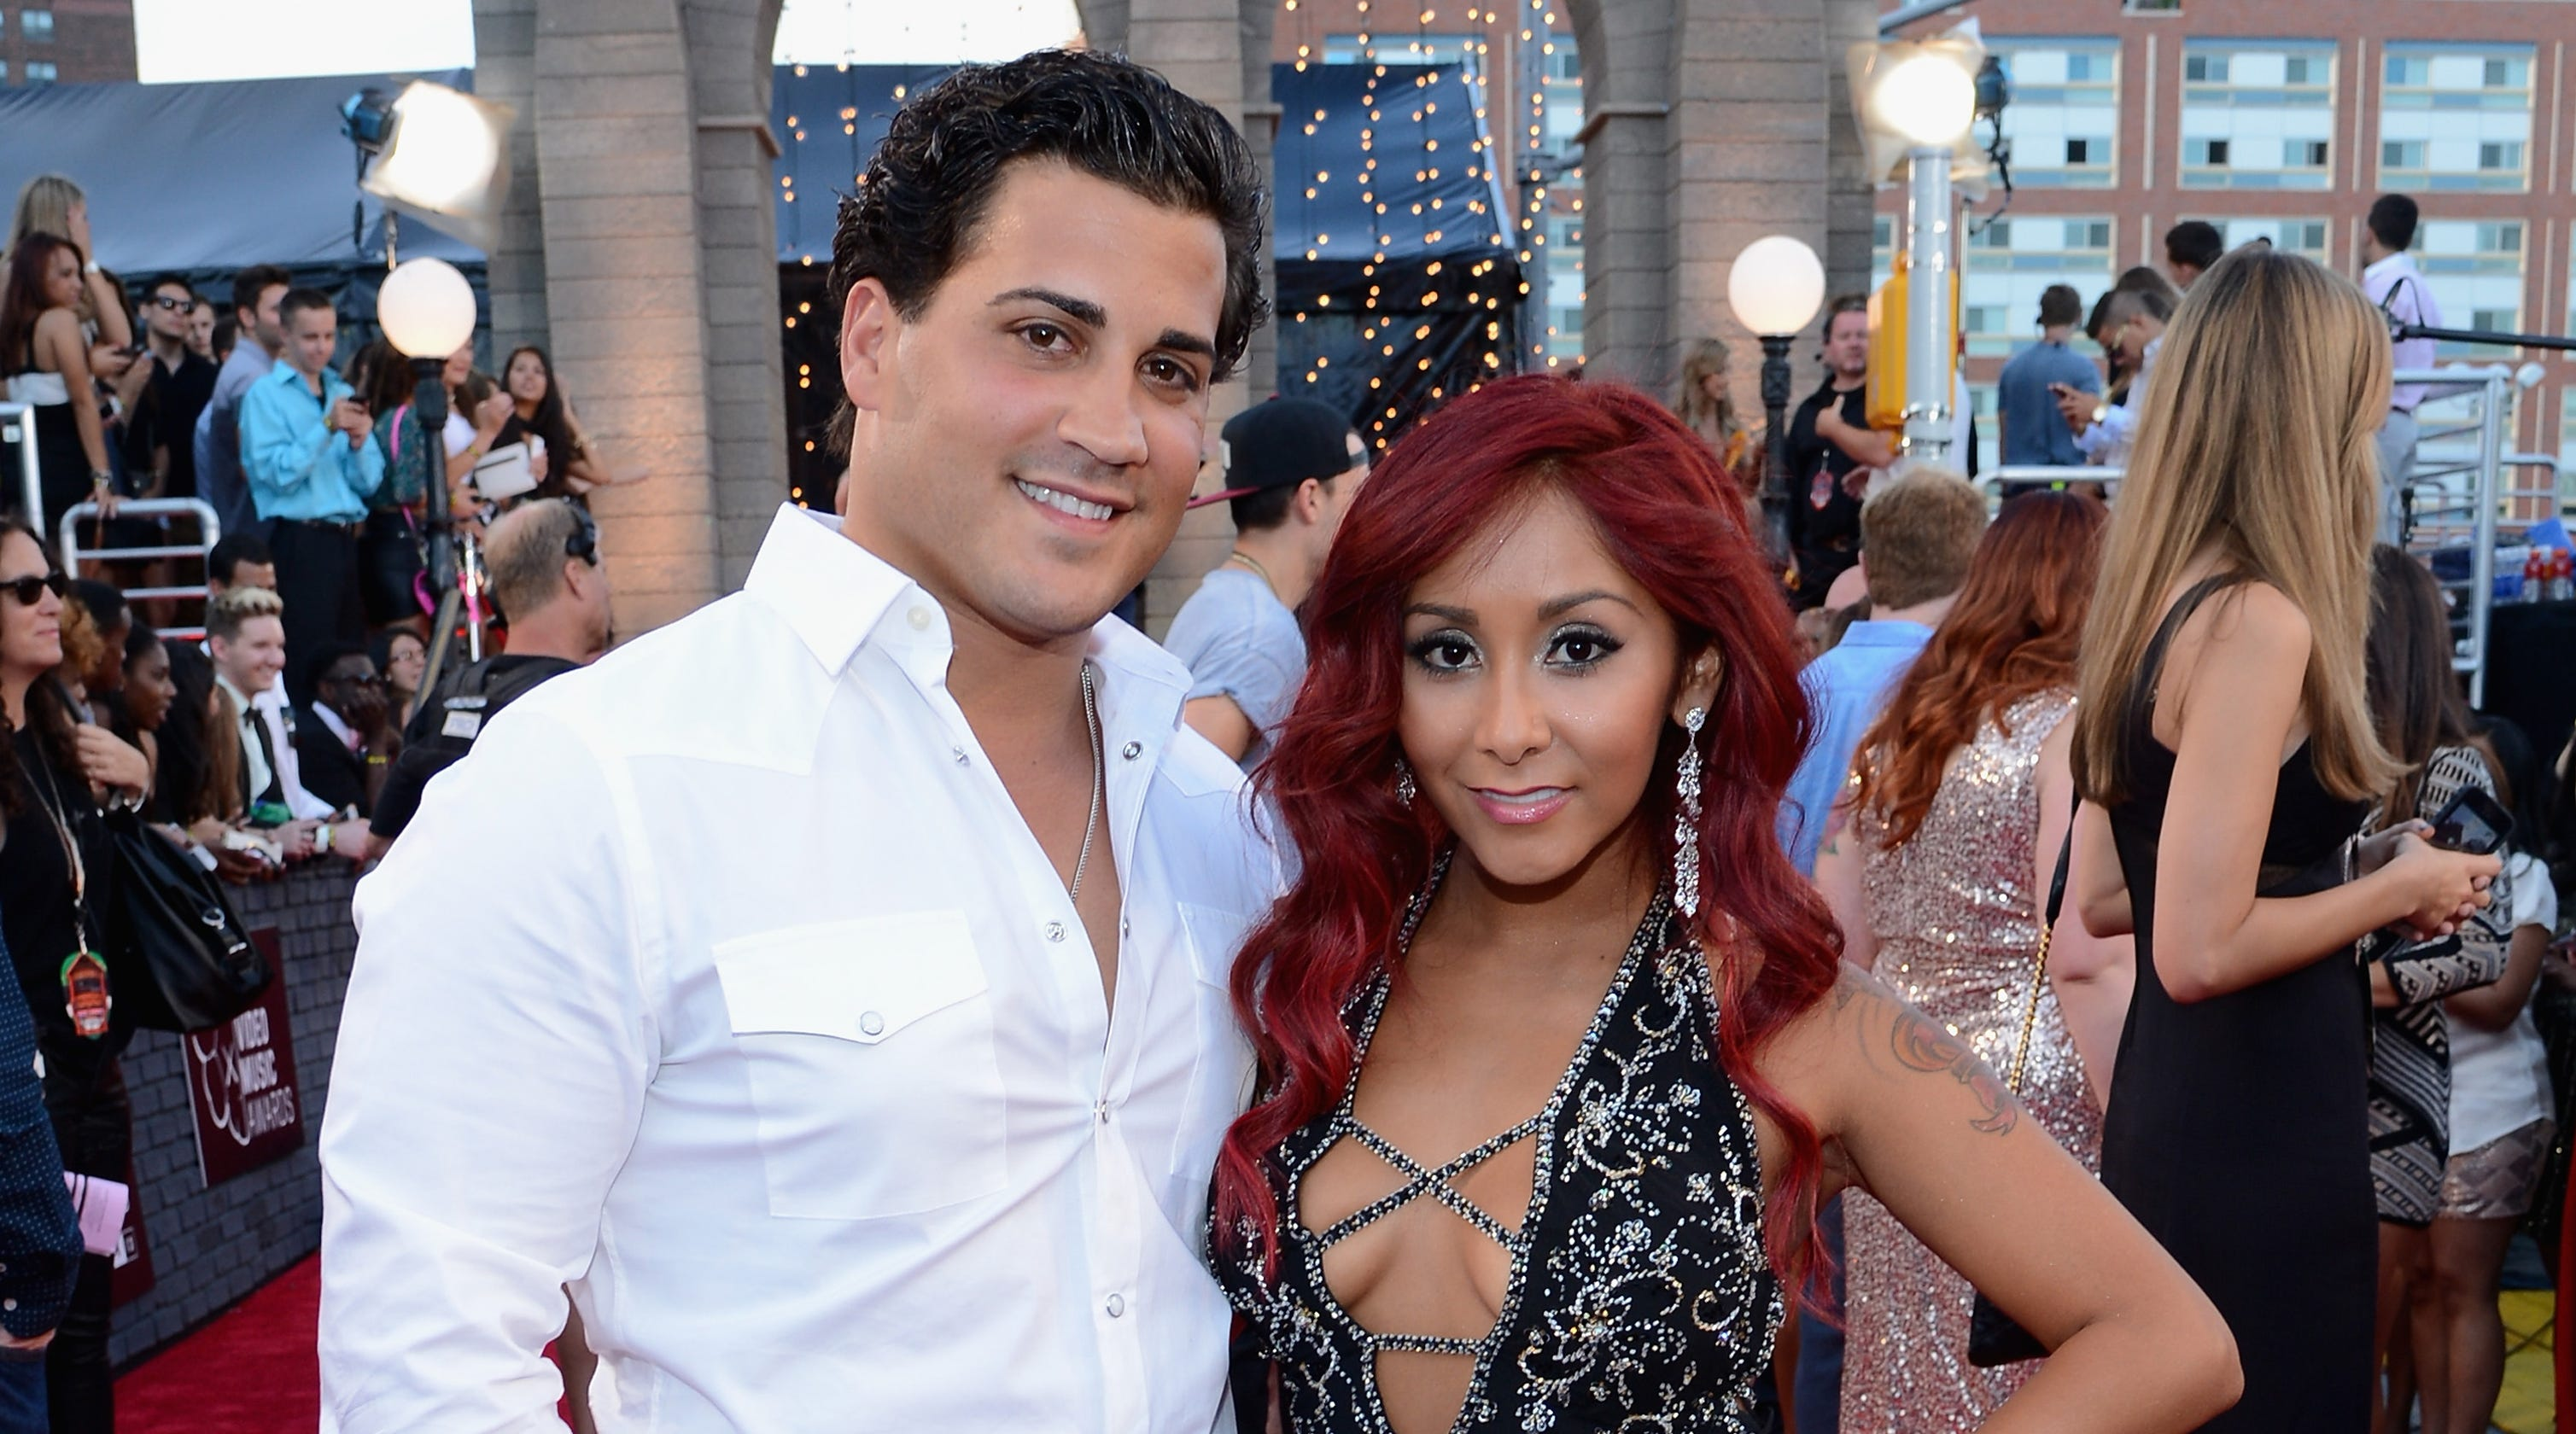 Nicole 'Snooki' Polizzi is 'miserable' she has to wait longer for baby No. 3 to arrive